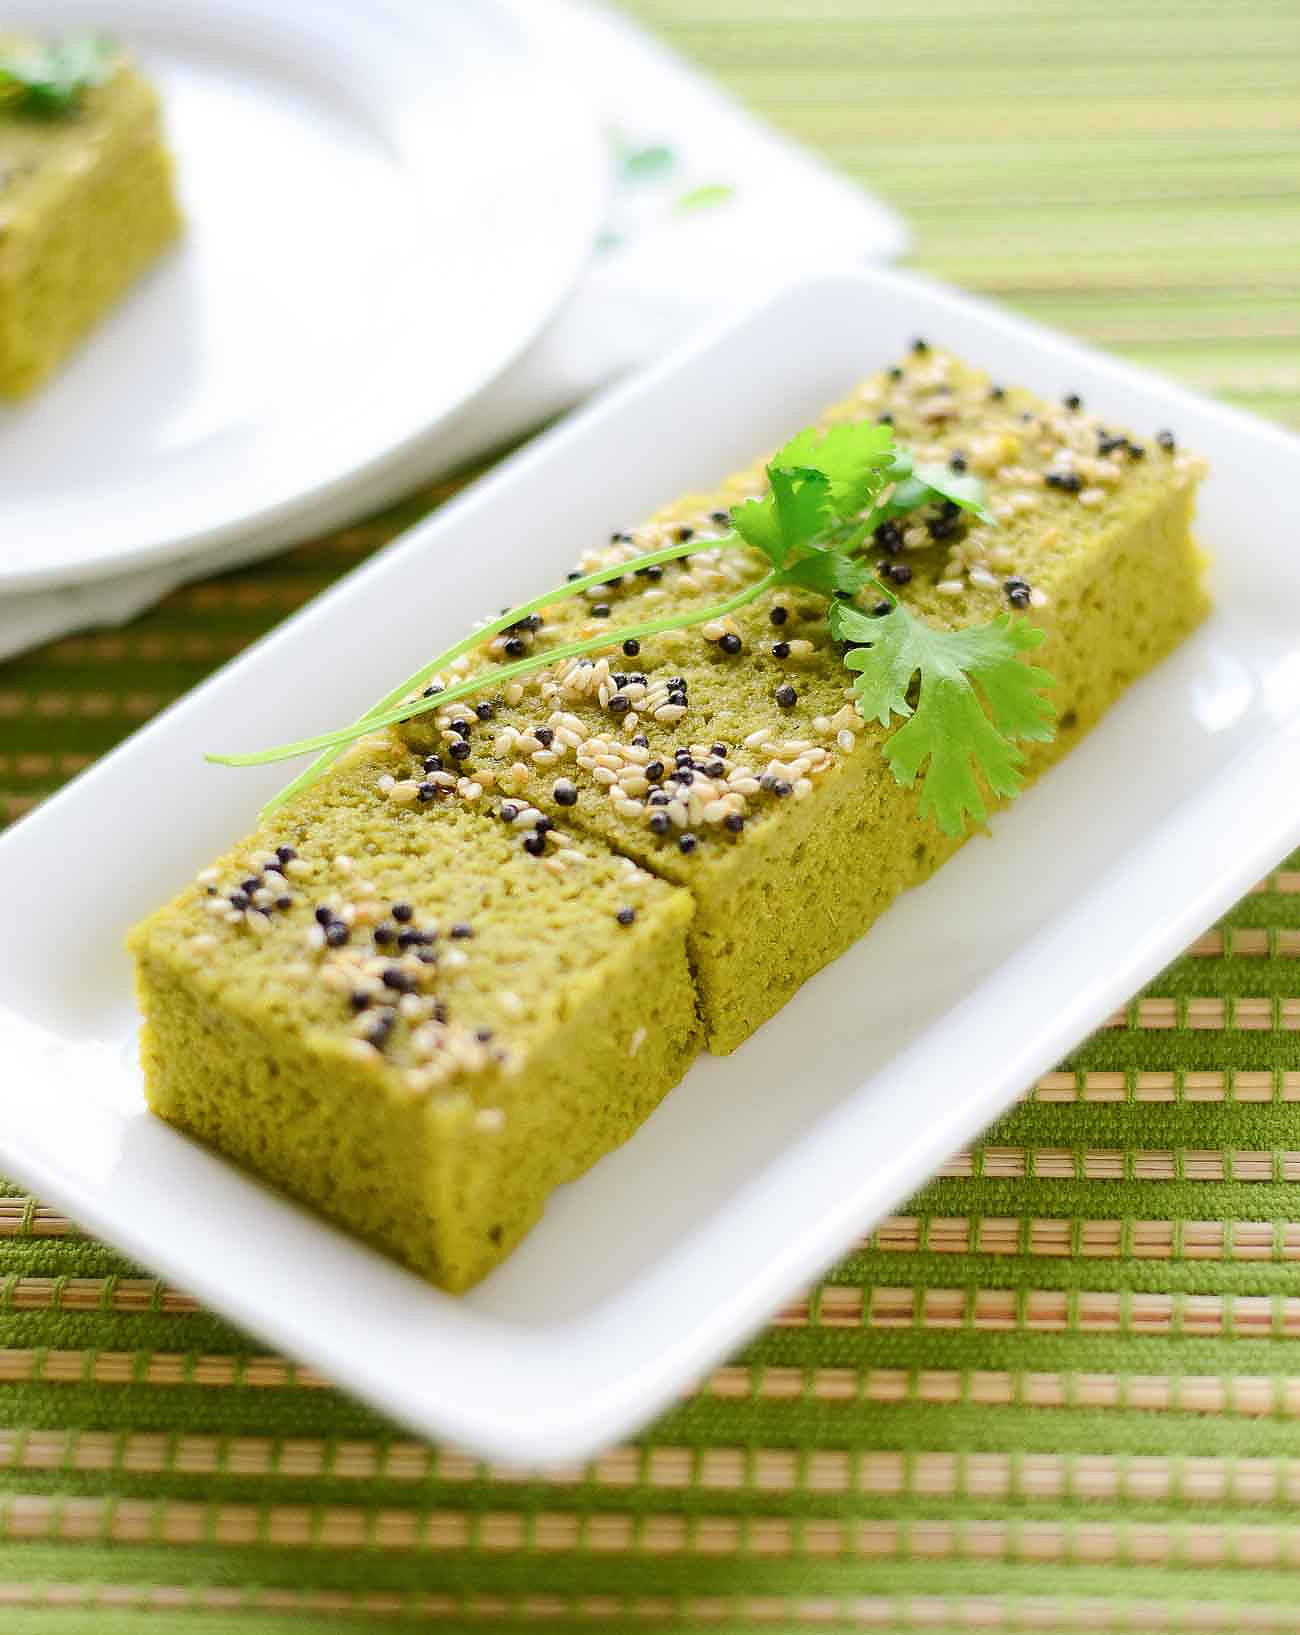 Gujarati Palak Dhokla Recipe - Steamed Spinach Lentil Cakes